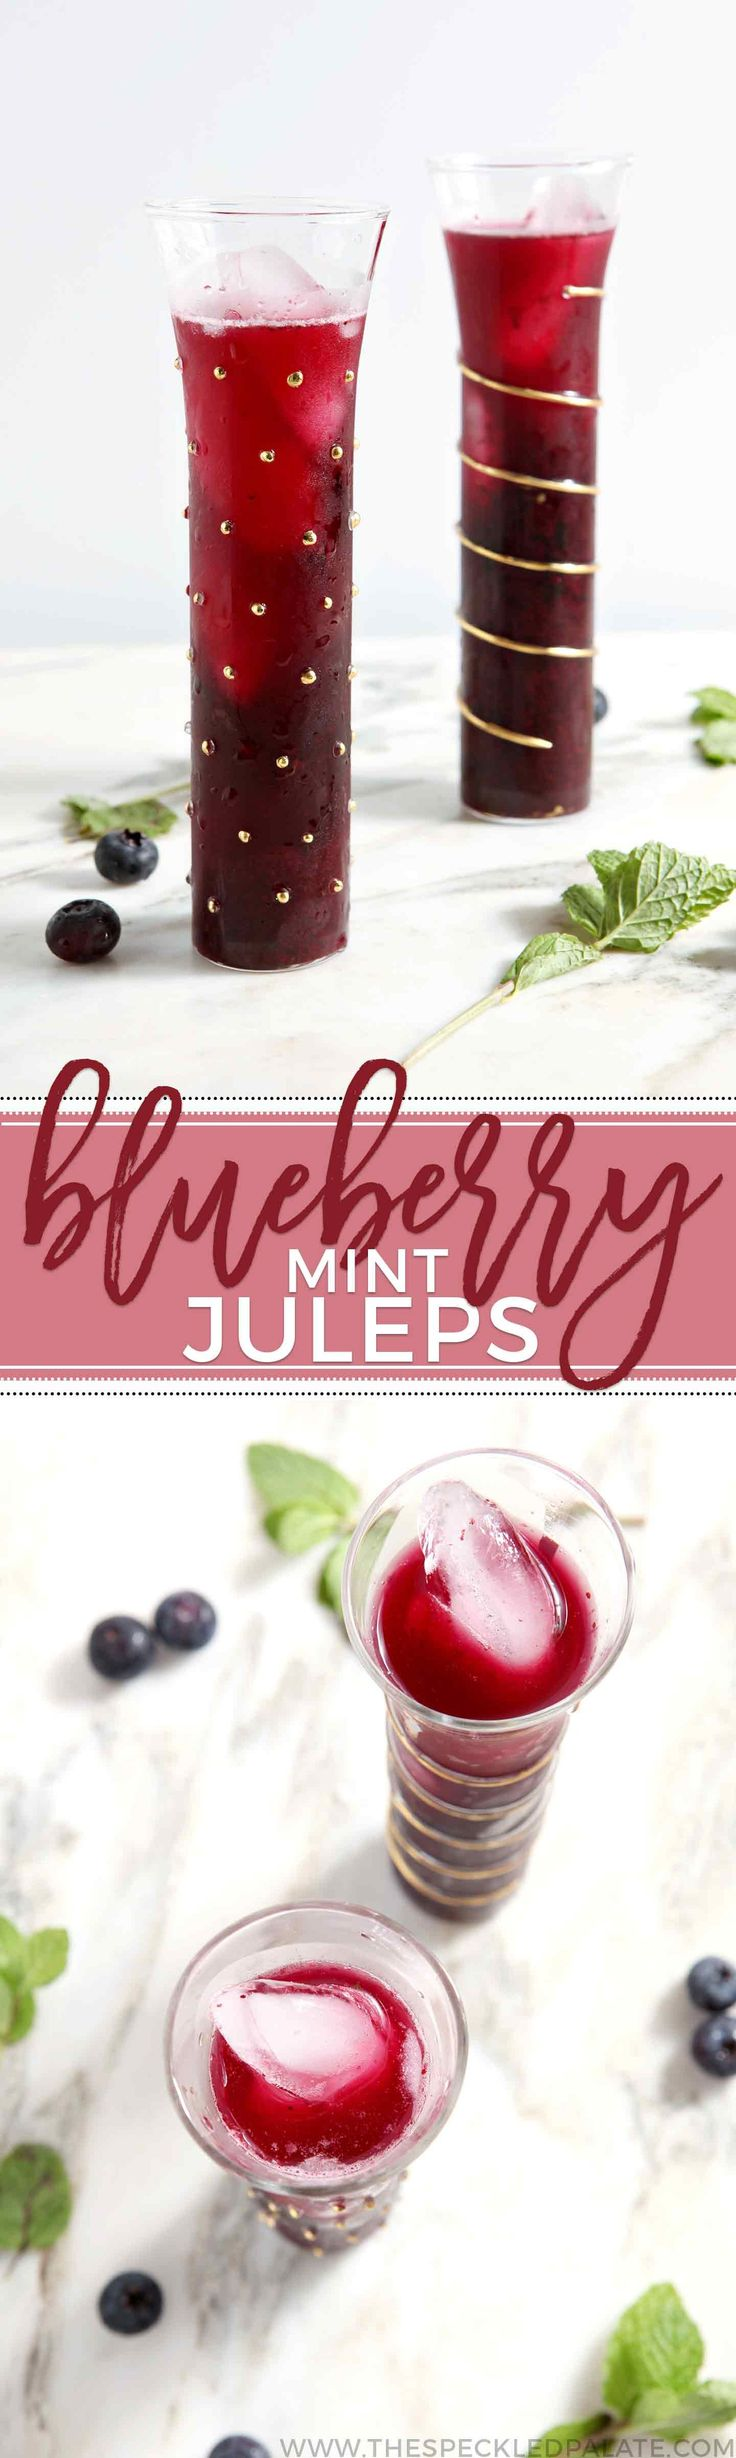 Celebrate Kentucky Derby Week by whipping up homemade Blueberry Mint Juleps, a summery twist on the Churchill Downs traditional cocktail!